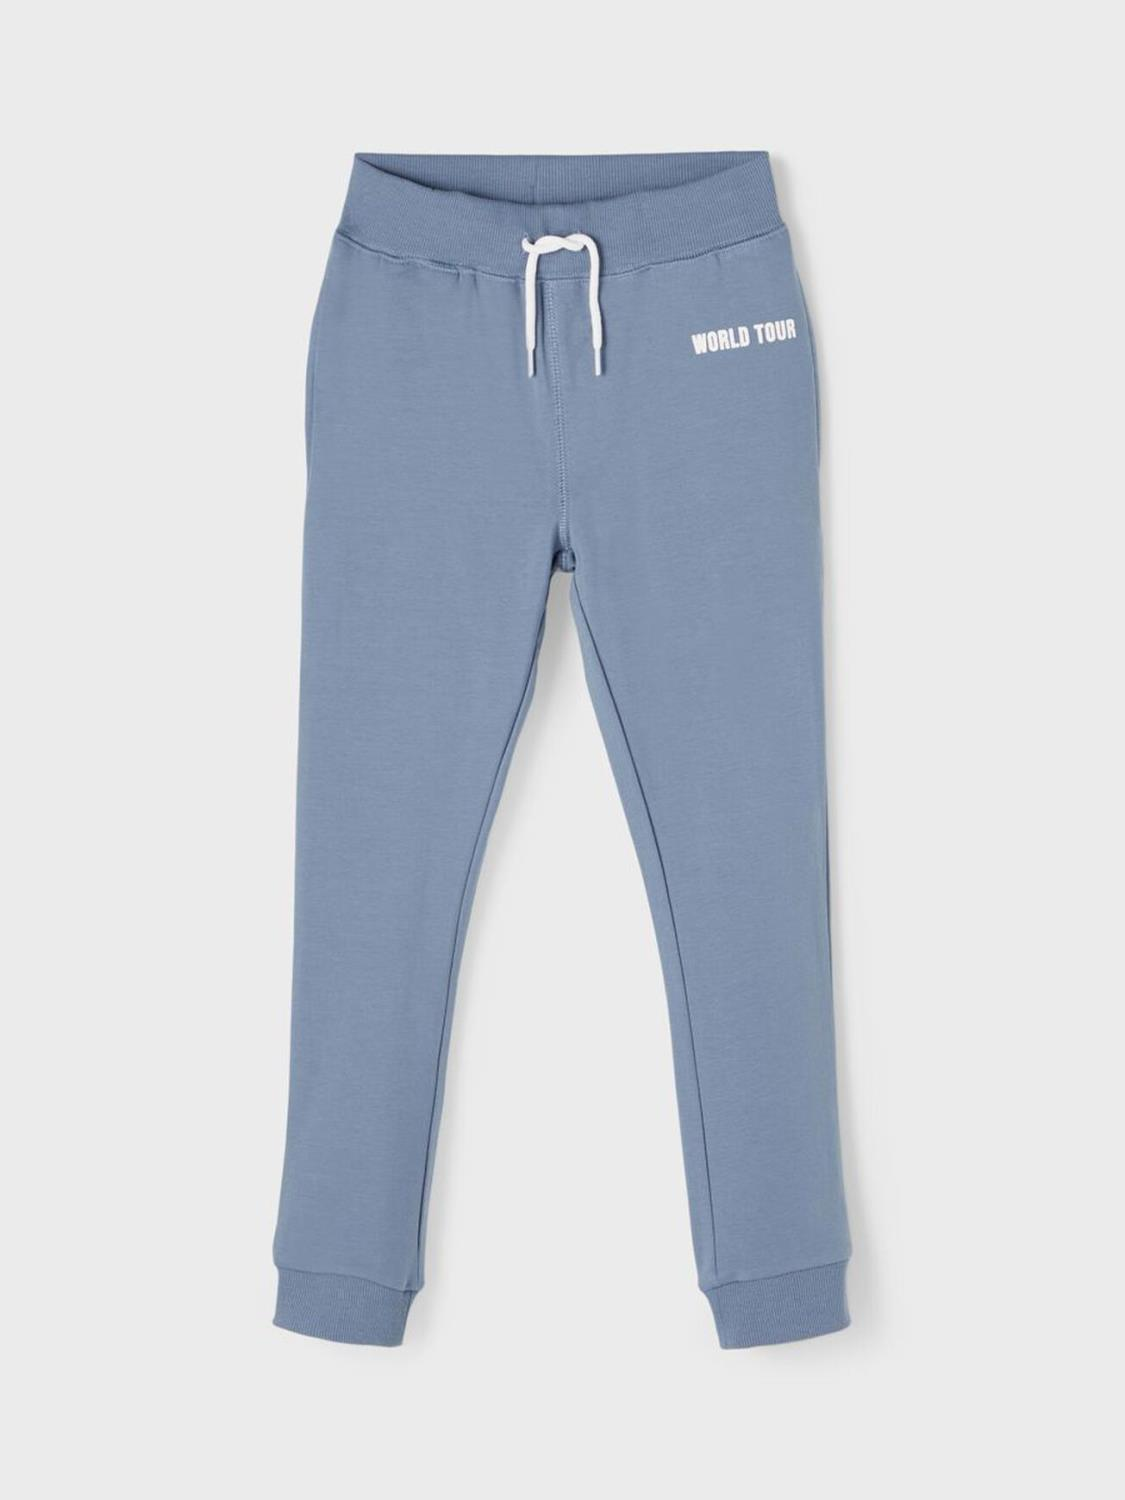 HORALLO SWEAT PANT CHINA BLUE - NAME IT